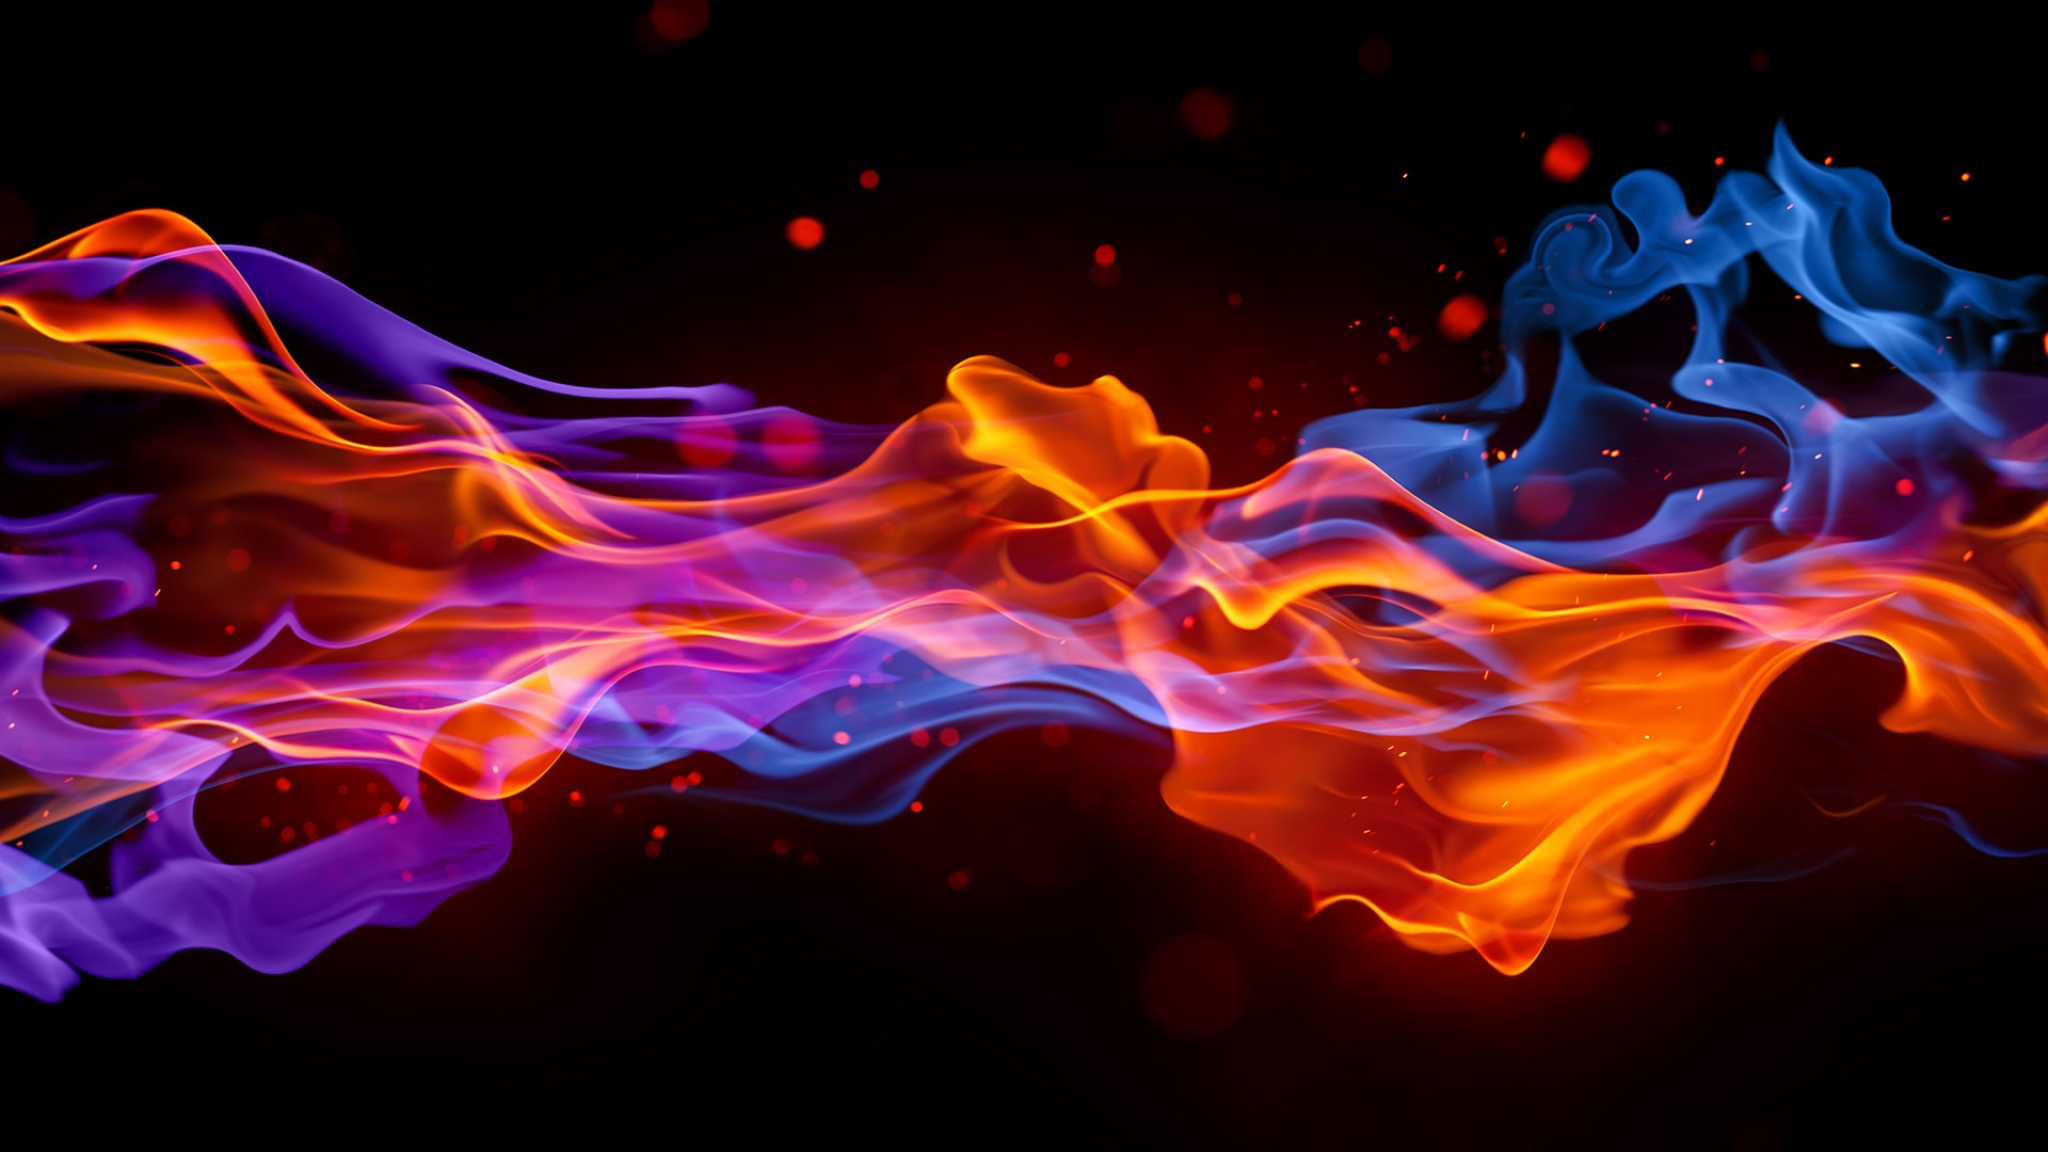 Smoke Fire Bright Colorful Background Wallpaper Background HD 2048x1152